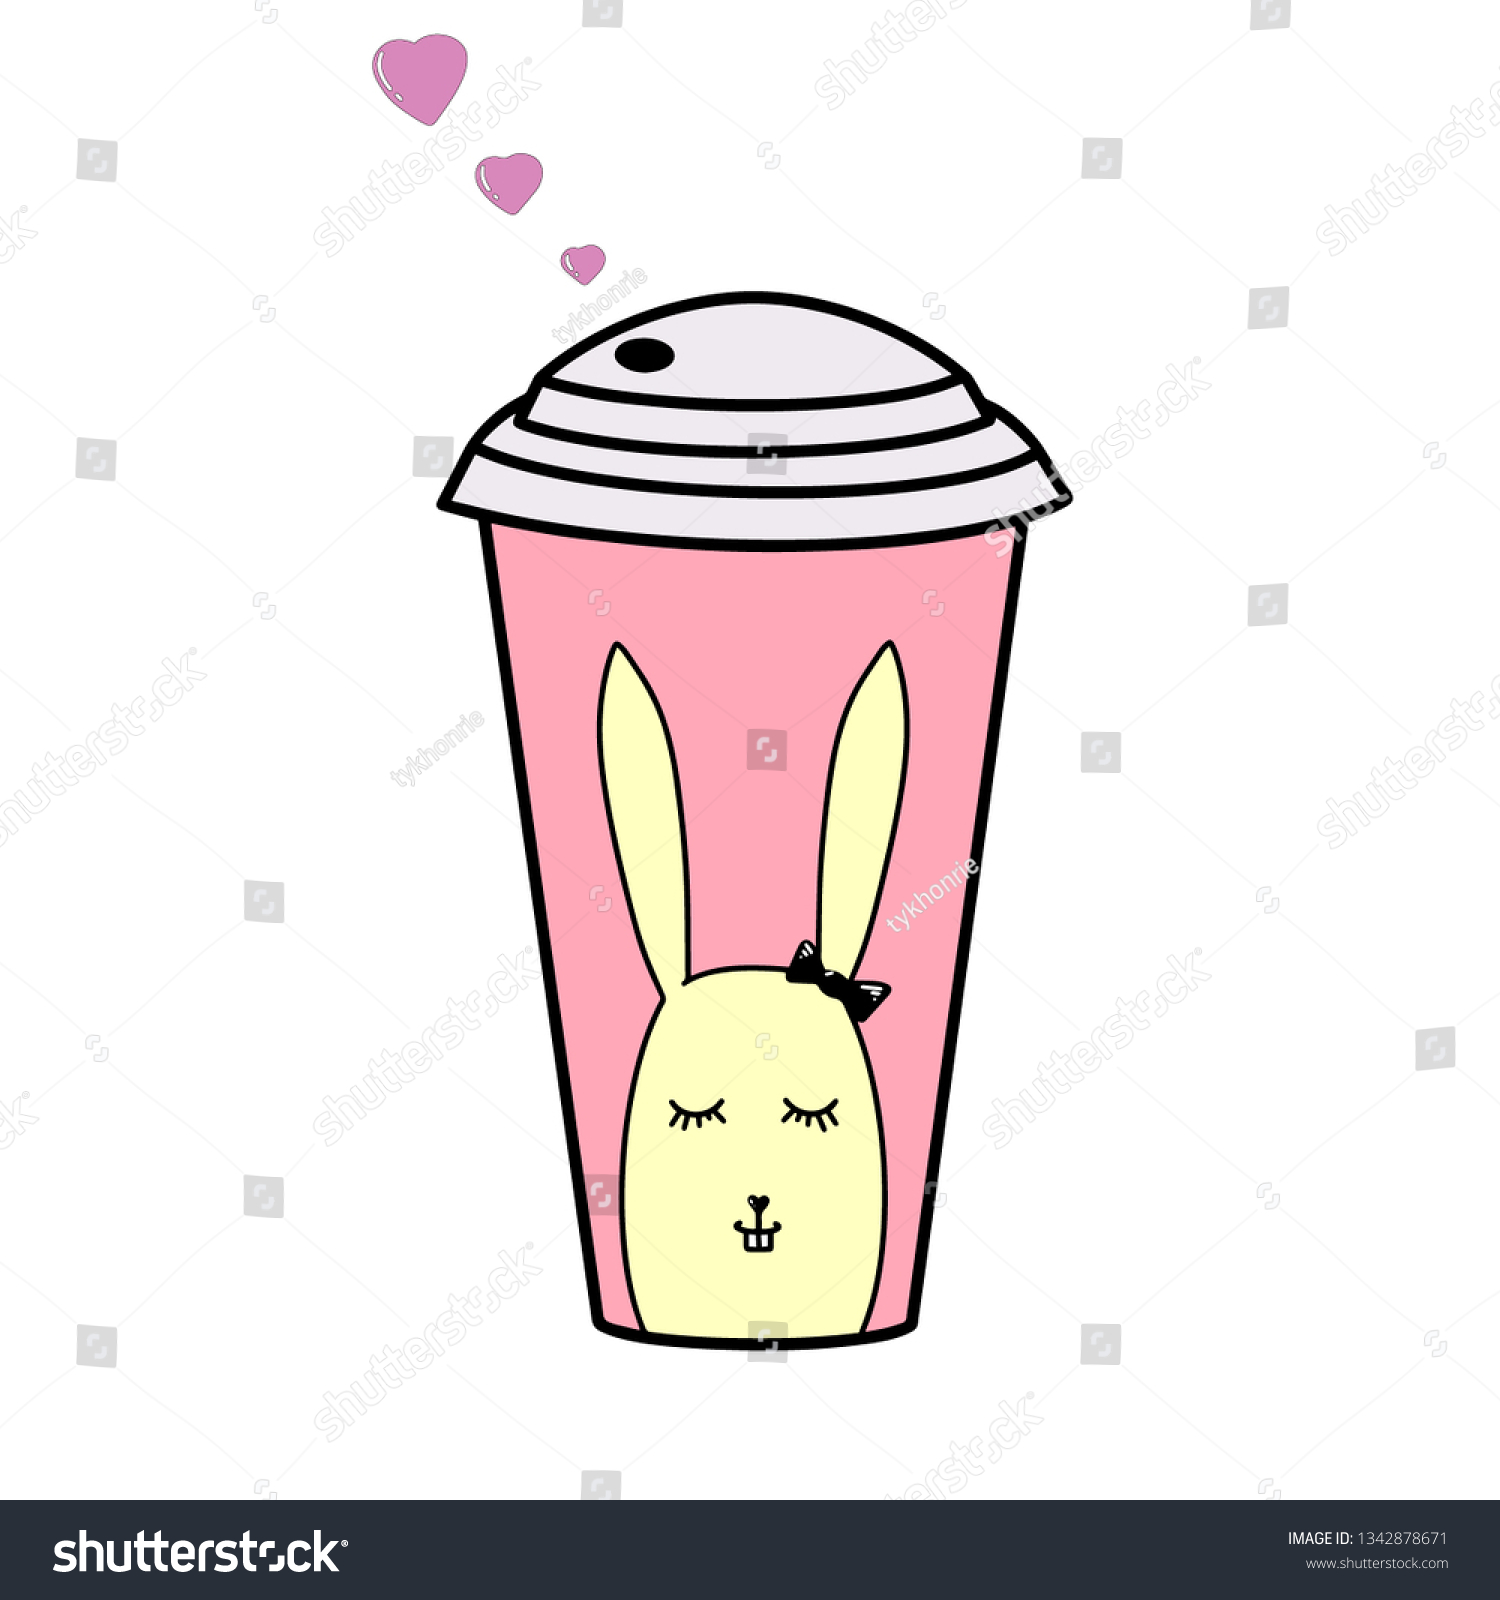 stock-vector-cup-of-coffee-with-pink-hea